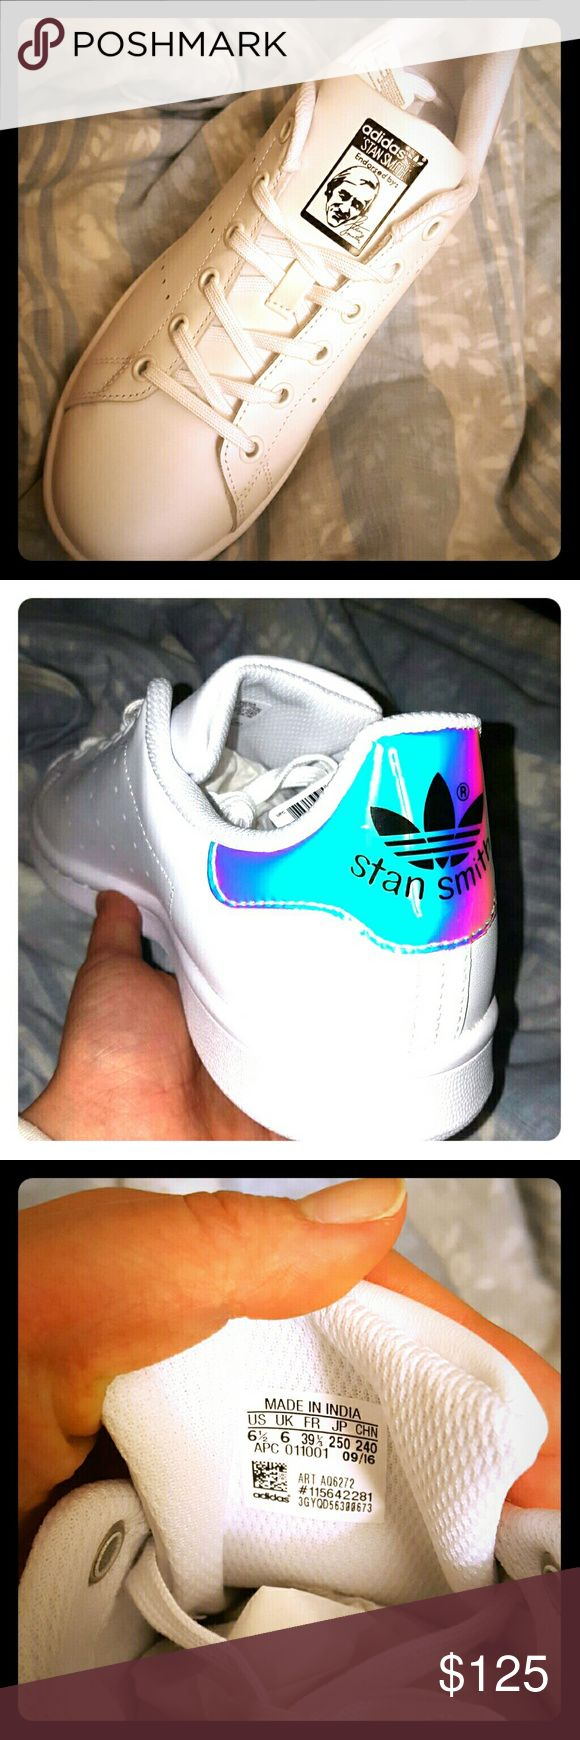 Adidas Holographic Stan Smith Brand new in box! Super shiney, love love love! I would say these run a little big but not enough to size yourself up or down unless your foot requires a wide or slim fit. I did get them in the youth section, however, the tongue label reads as a (mens 6.5)/(womens 7.5) and the label matches up with the size chart on the adult adidas website. Let me know if you need more pictures :) Adidas Shoes Sneakers